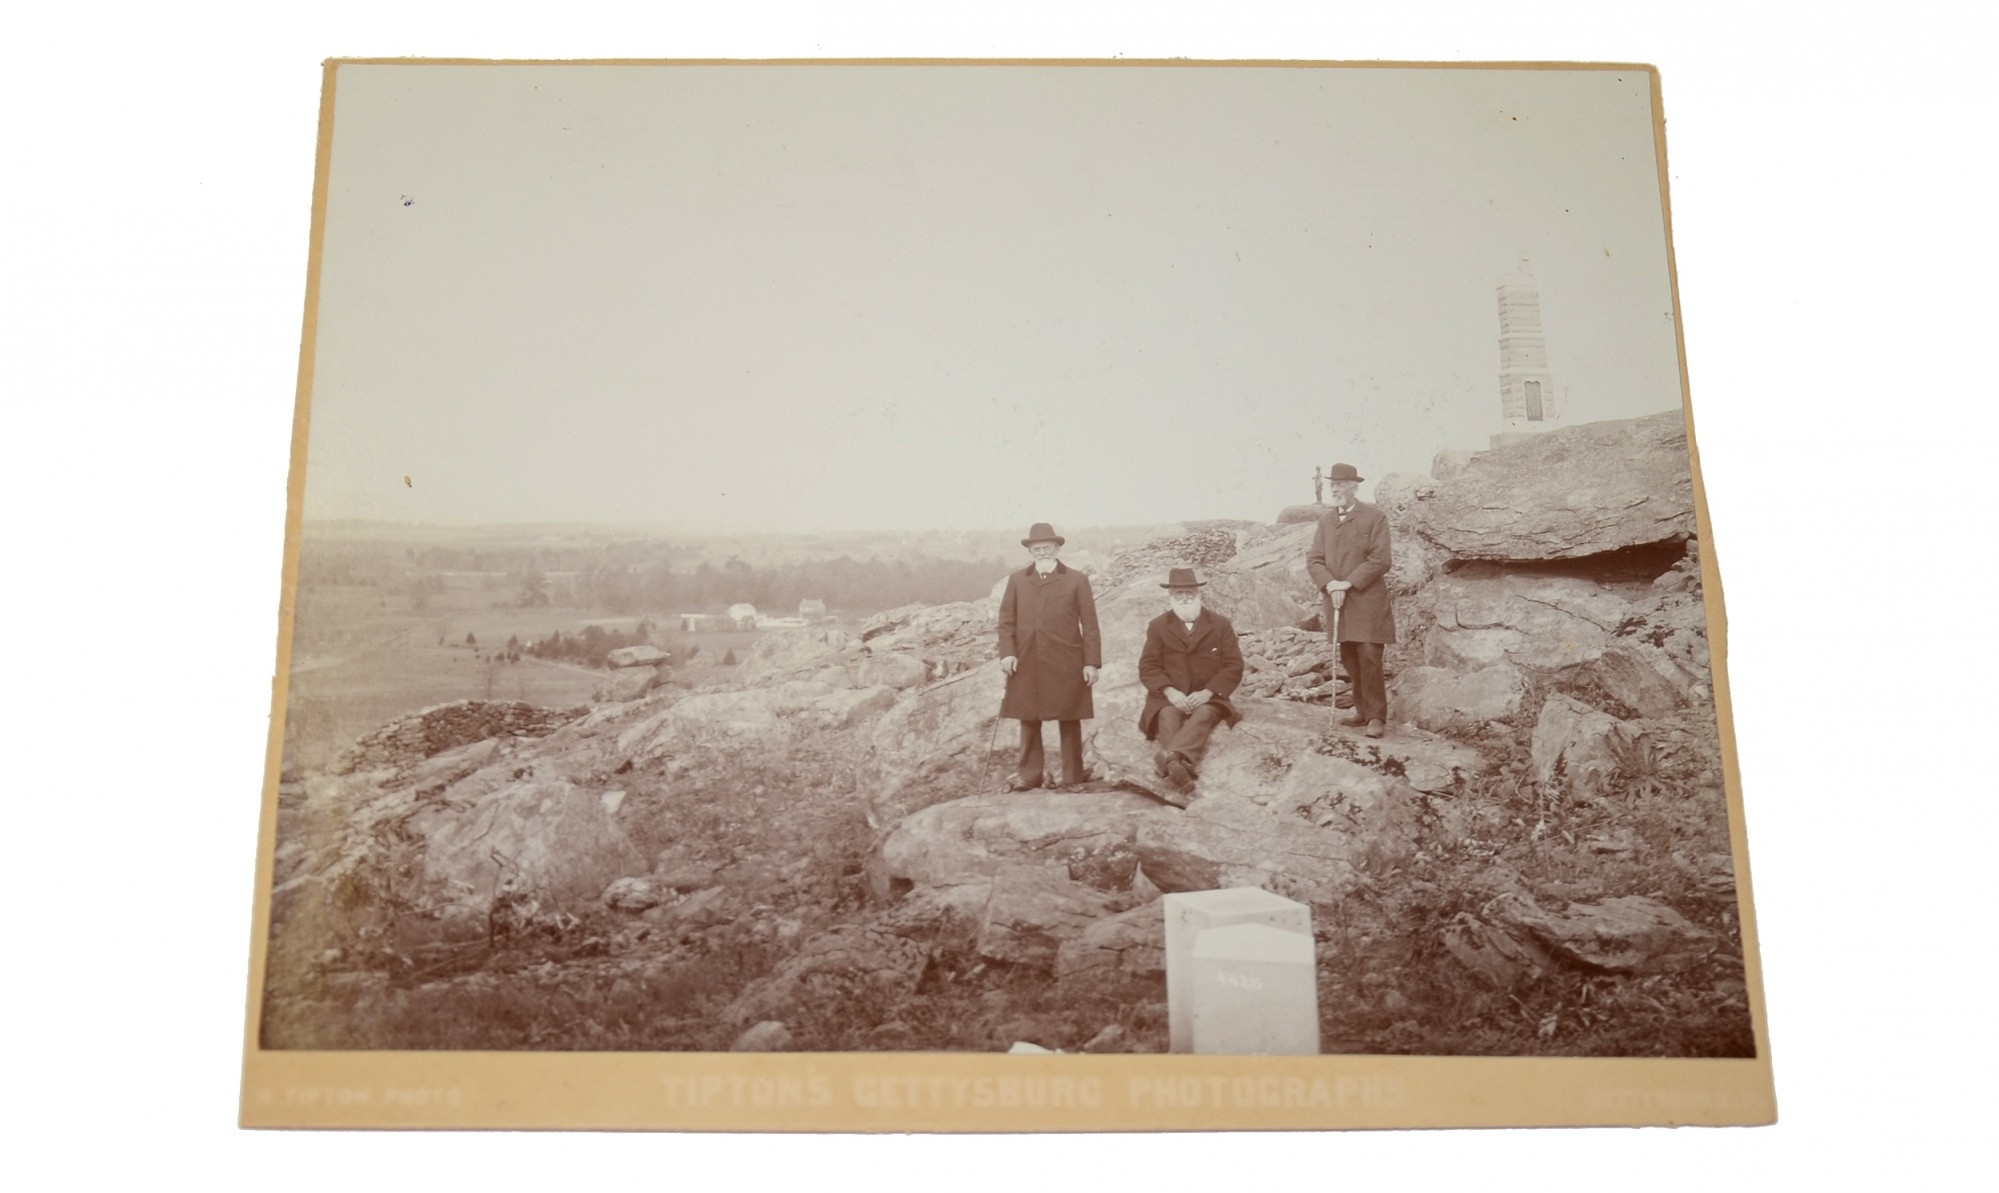 TIPTON CABINET CARD IMAGE OF CIVIL WAR VETERANS ON LITTLE RPOUND TOP